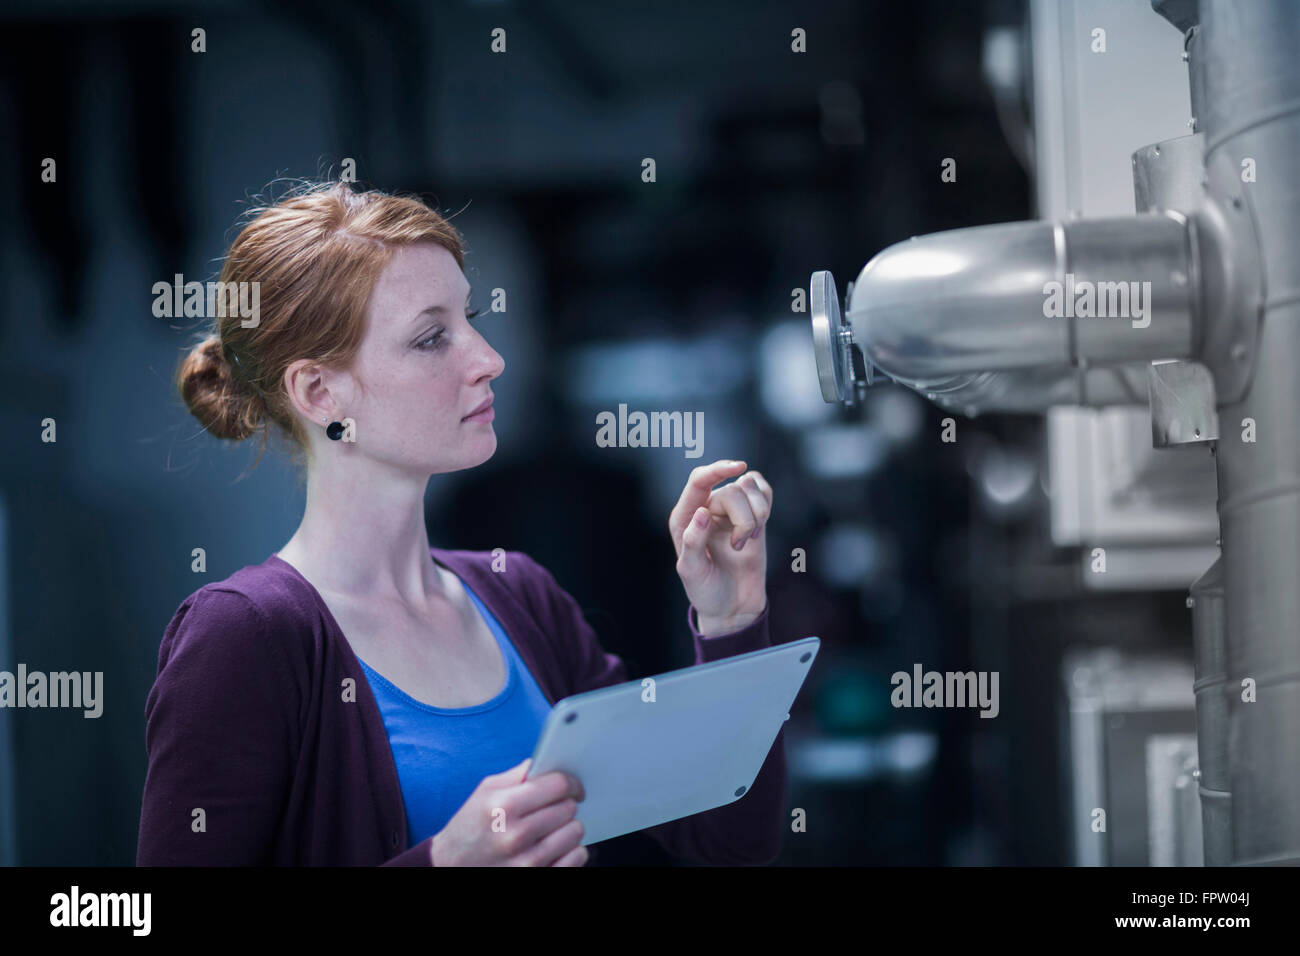 Young female engineer controlling a switchgear in control room, Freiburg Im Breisgau, Baden-Württemberg, Germany - Stock Image